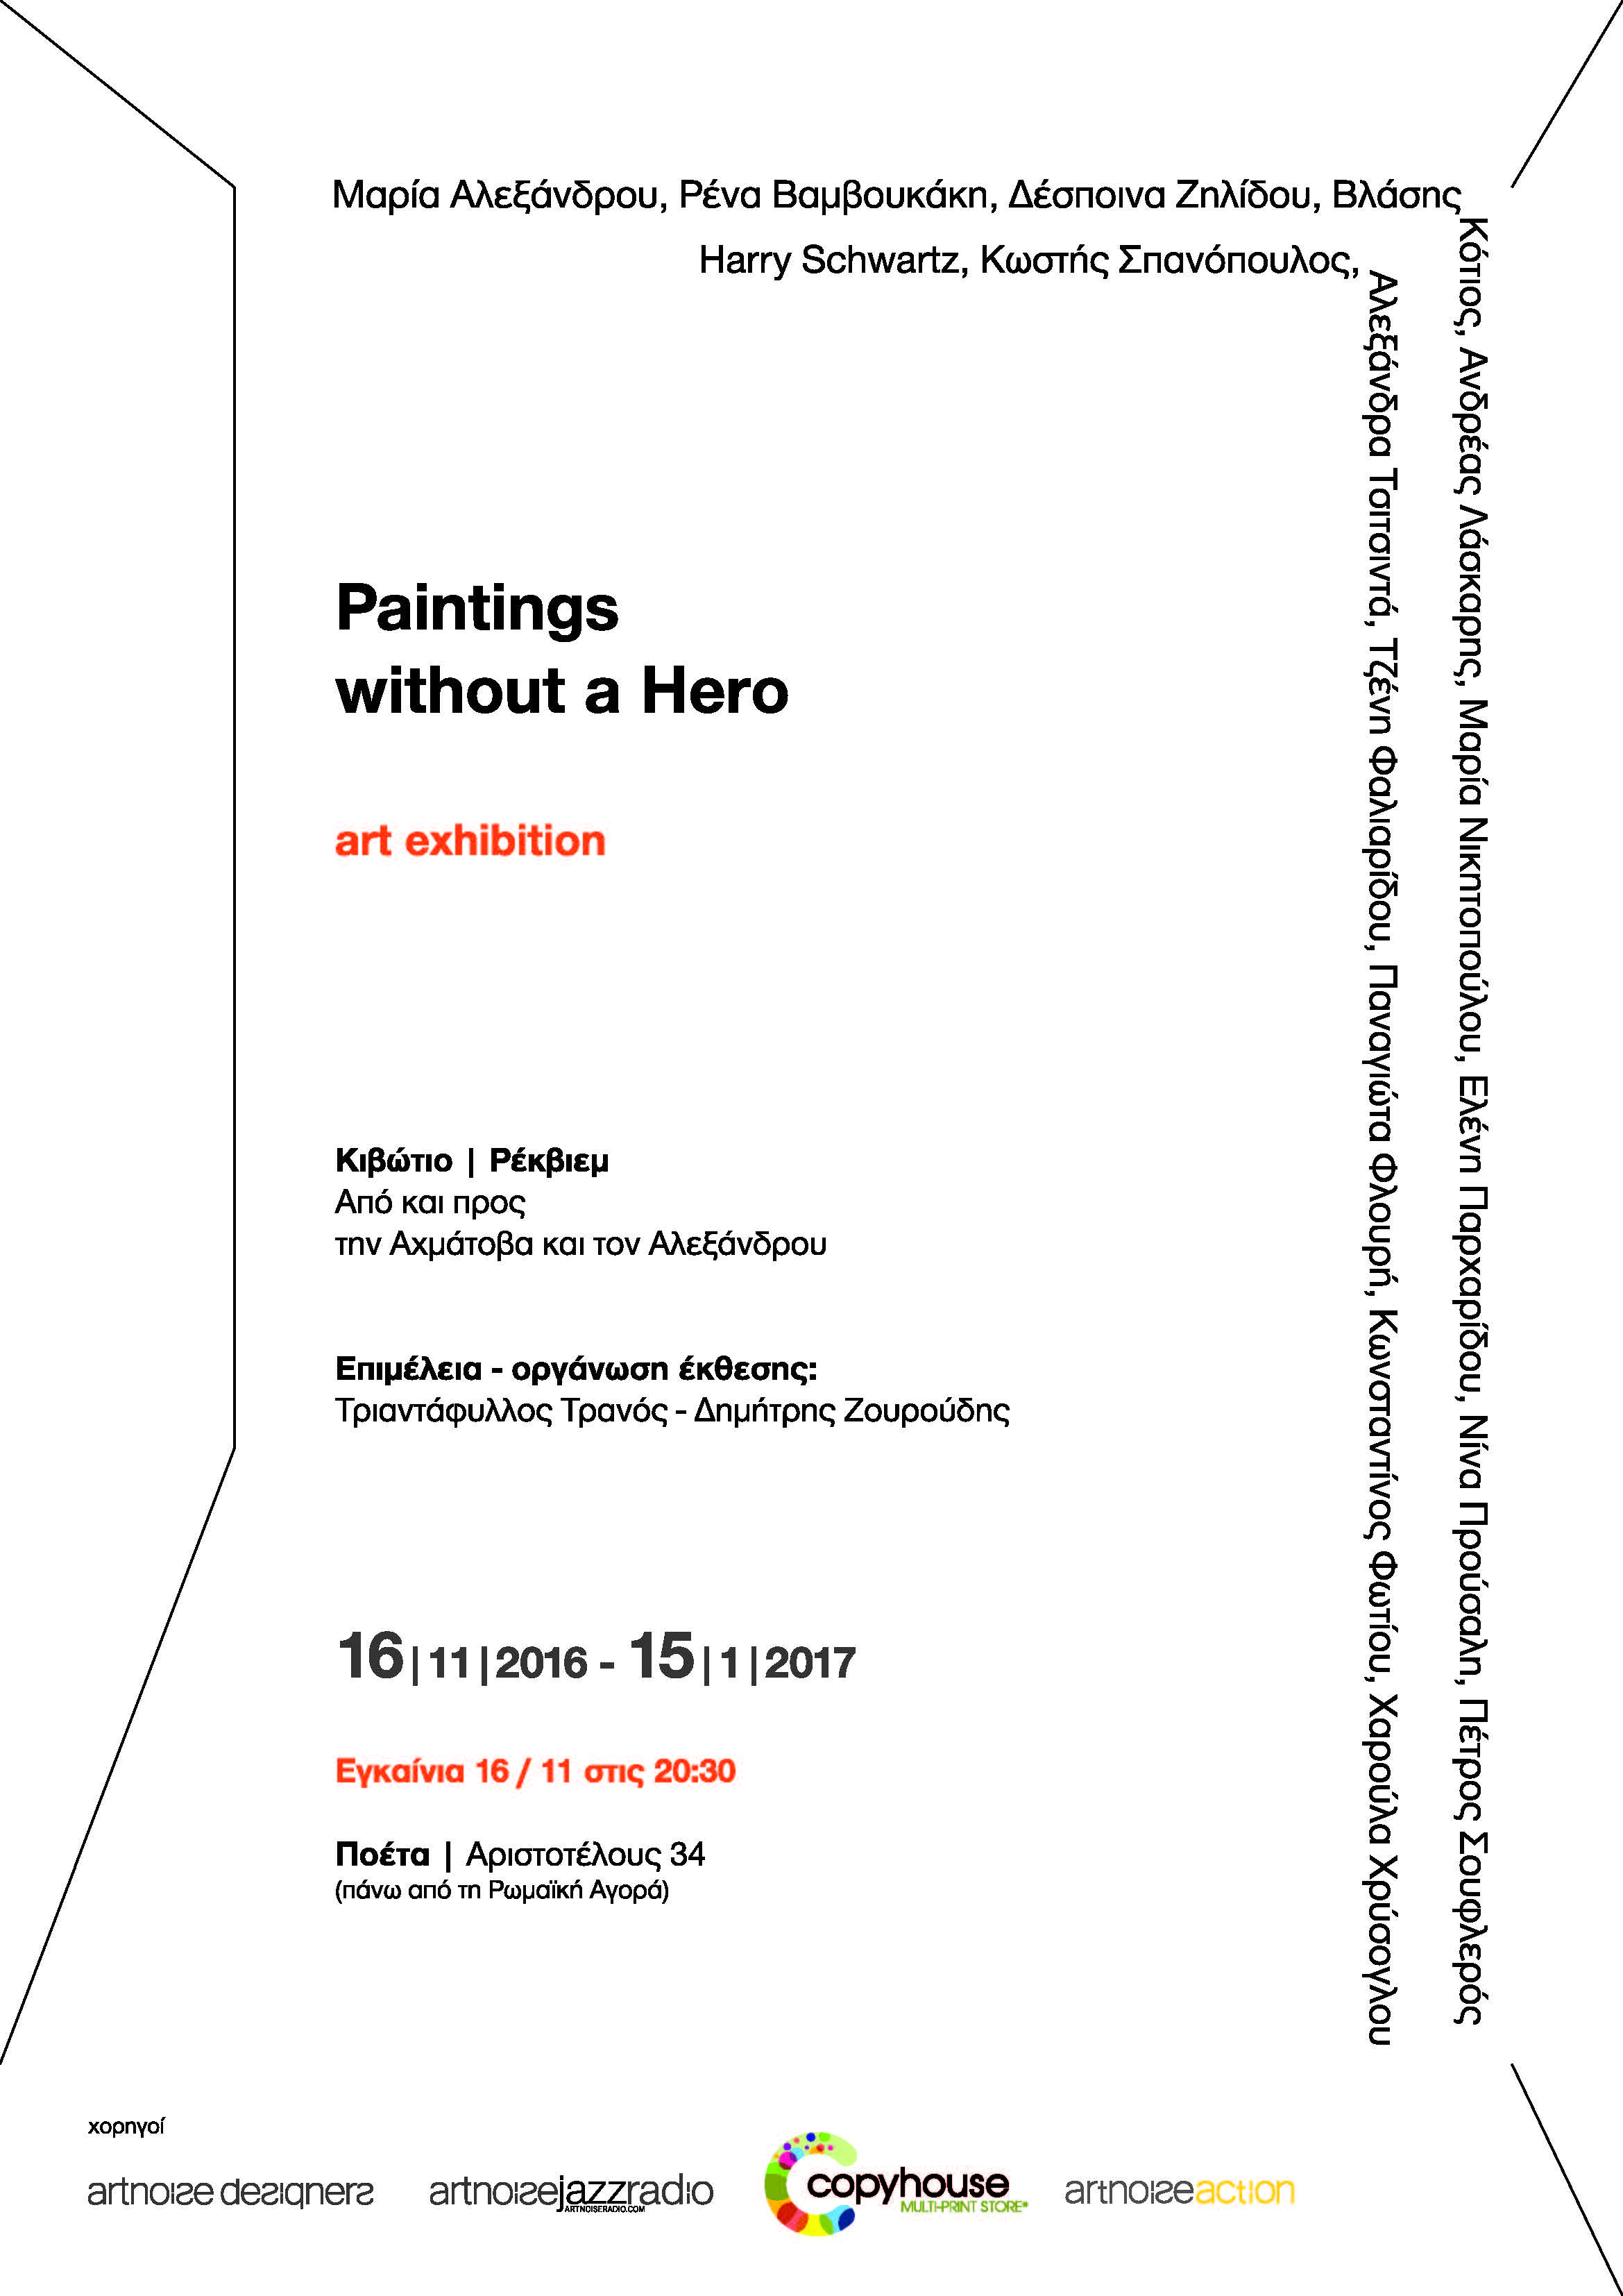 Paintings without a hero